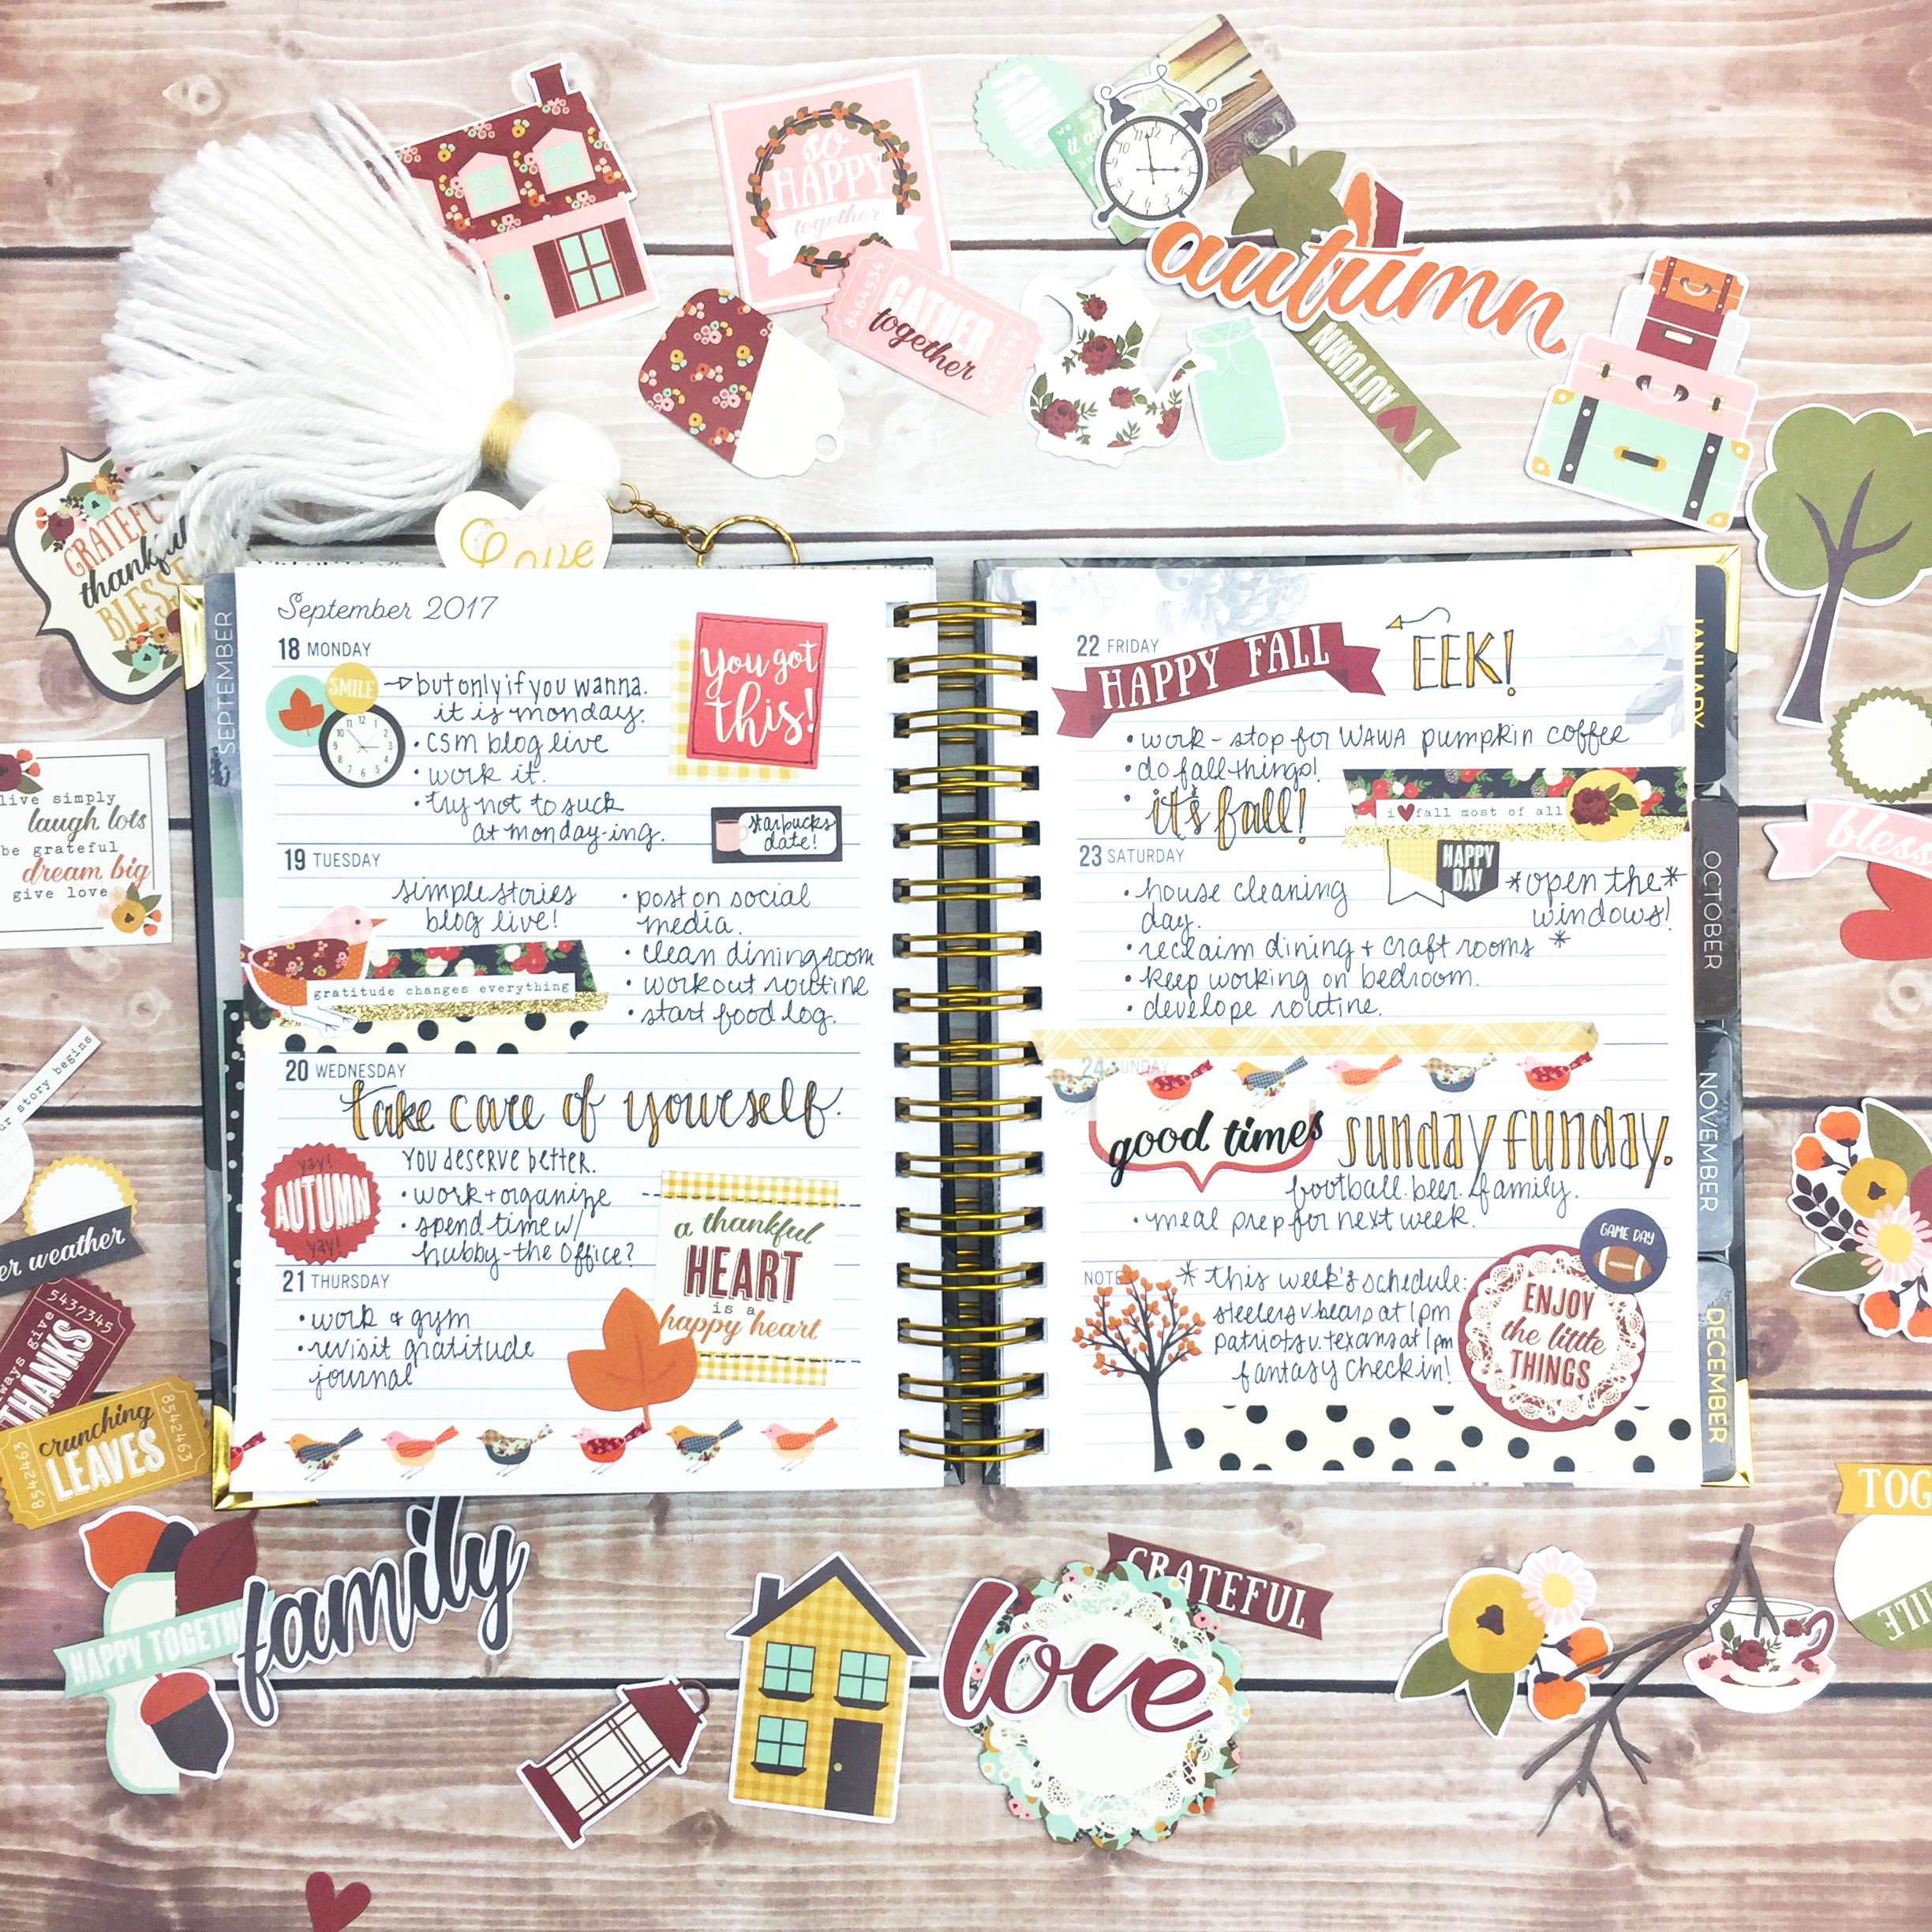 Planner | Scrapbooking You Planner | DIY Planner | Day Planner | Featuring Simple Stories | Designed by Leah O'Neil | Creative Scrapbooker Magazine #planners #journal